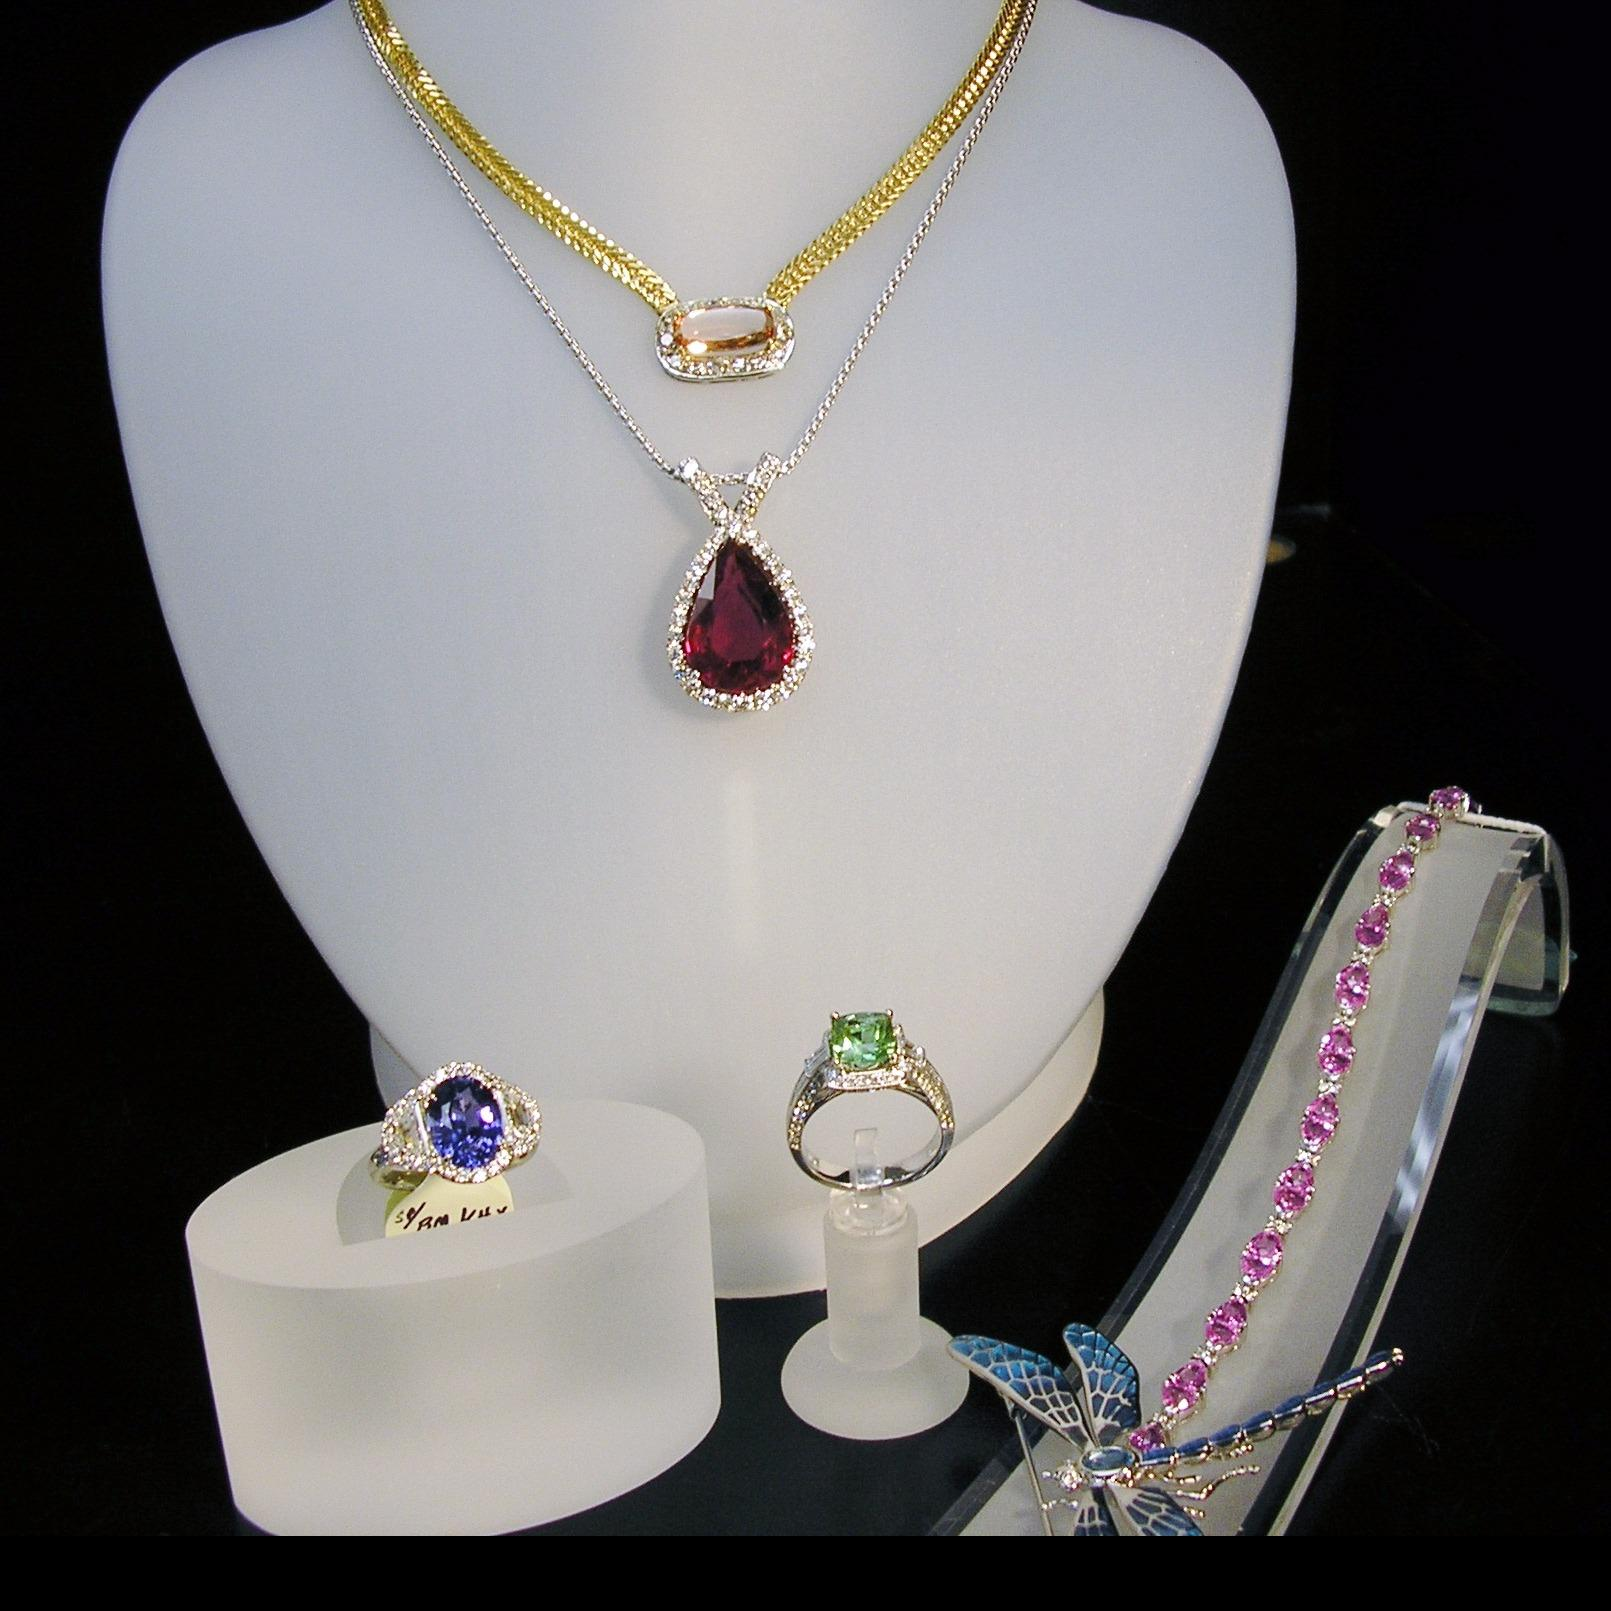 Maryanne S. Ritter Jewelers